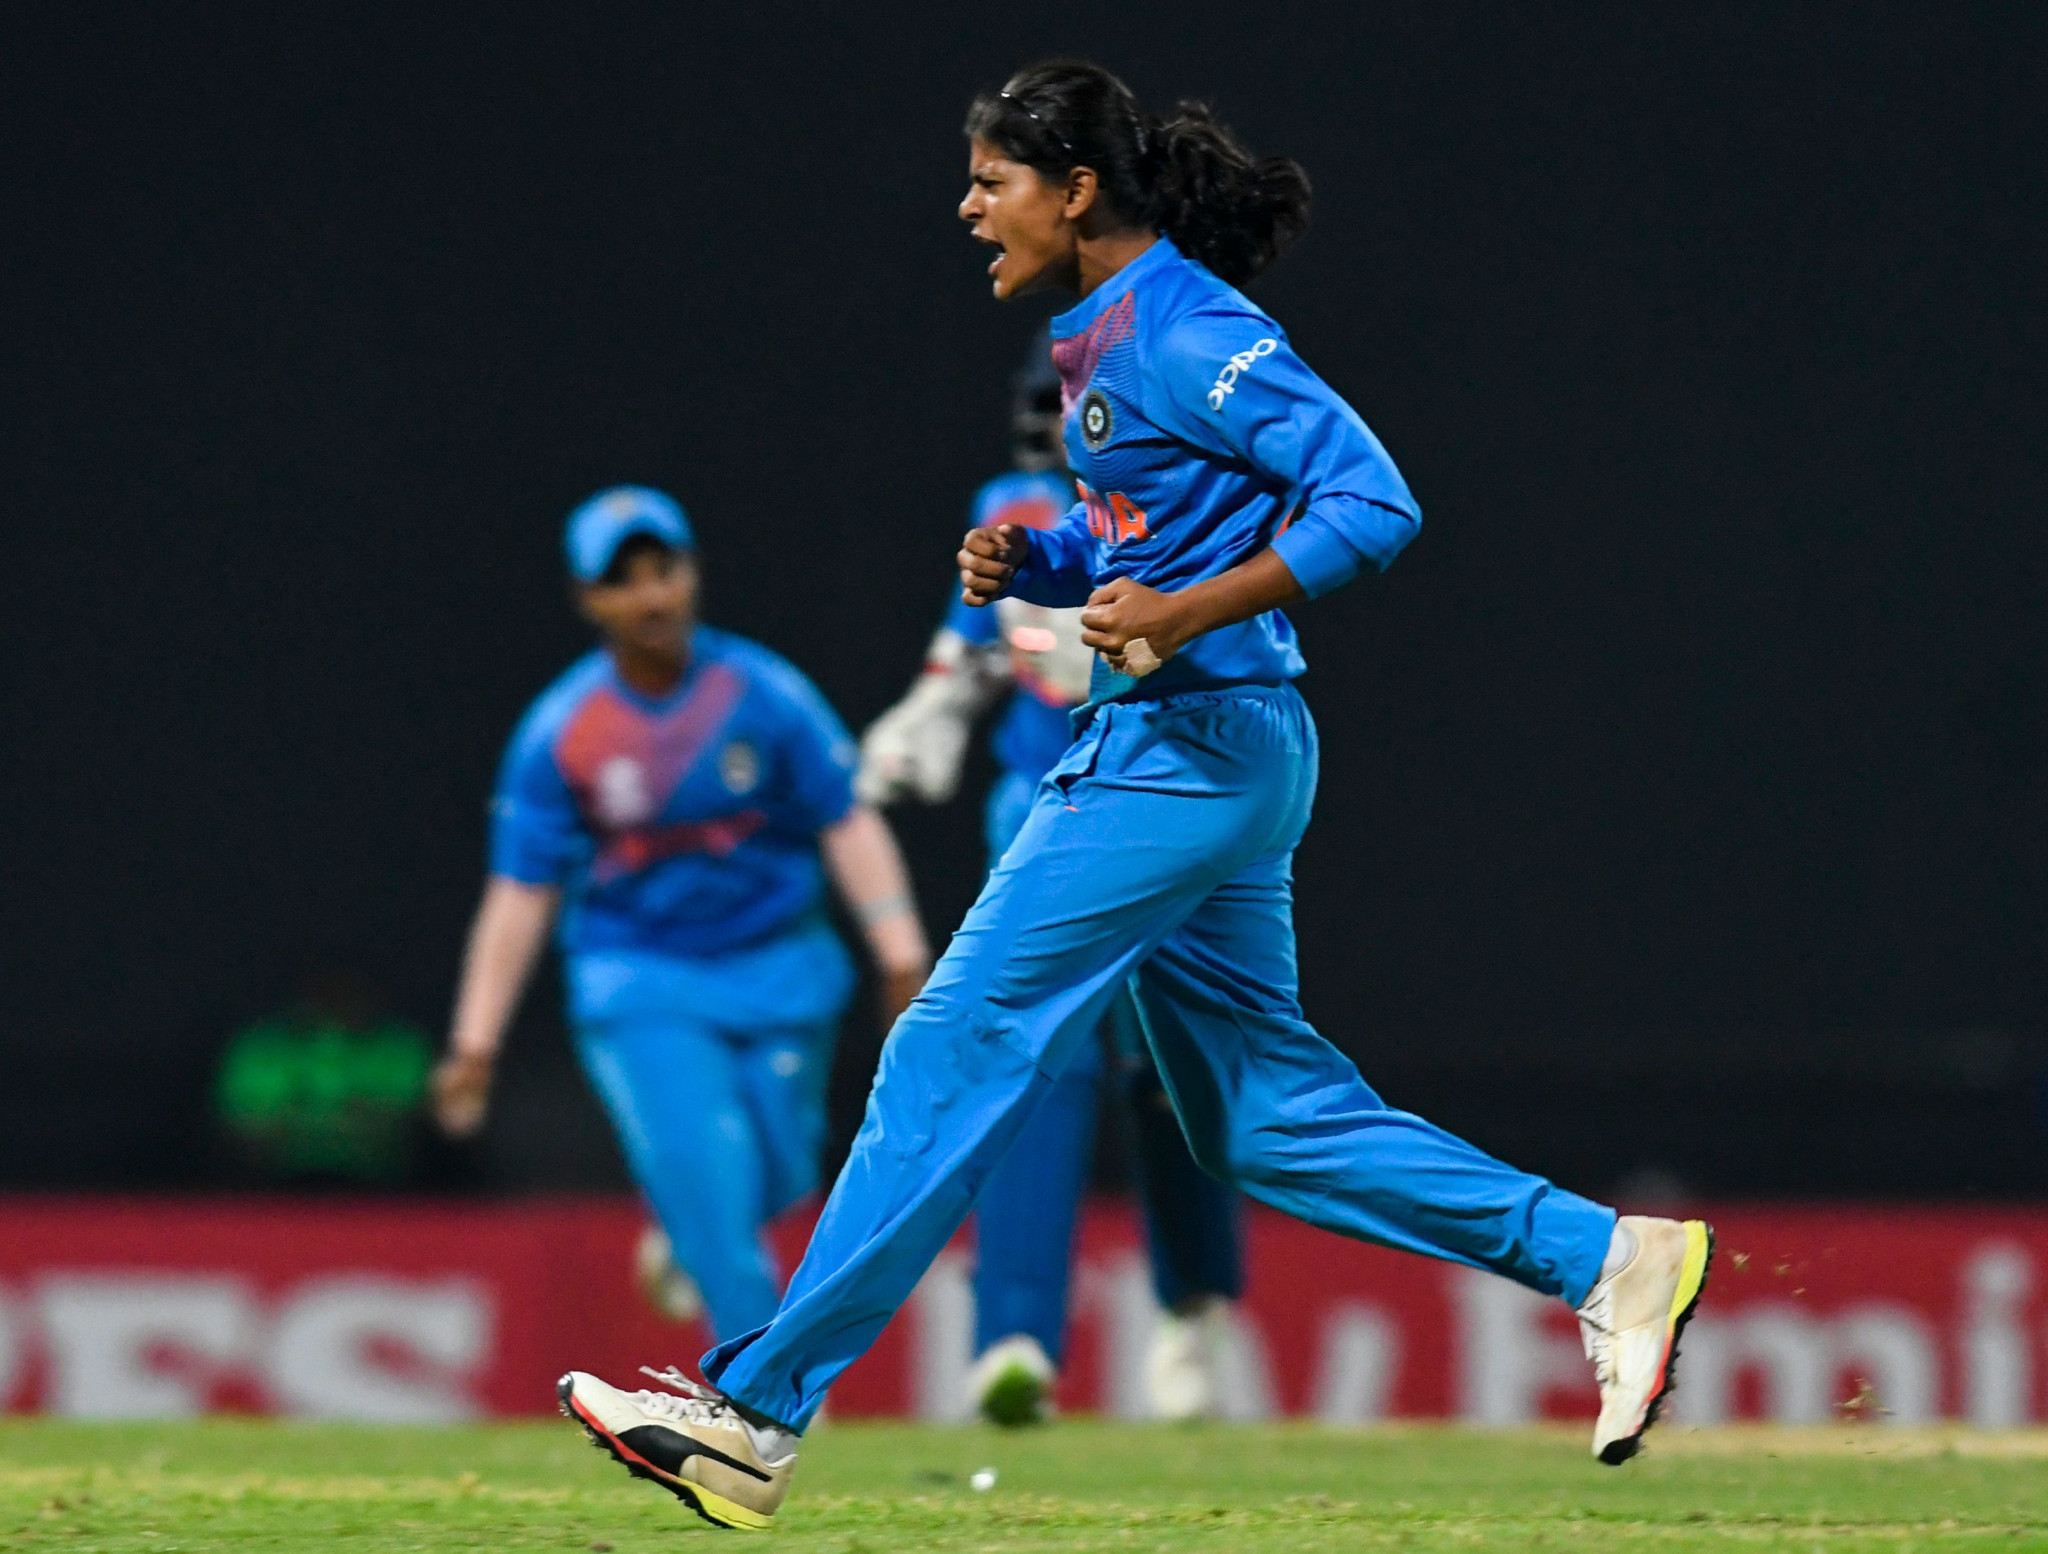 Raman appointed as head coach of Indian women's cricket team despite Kirsten being first choice